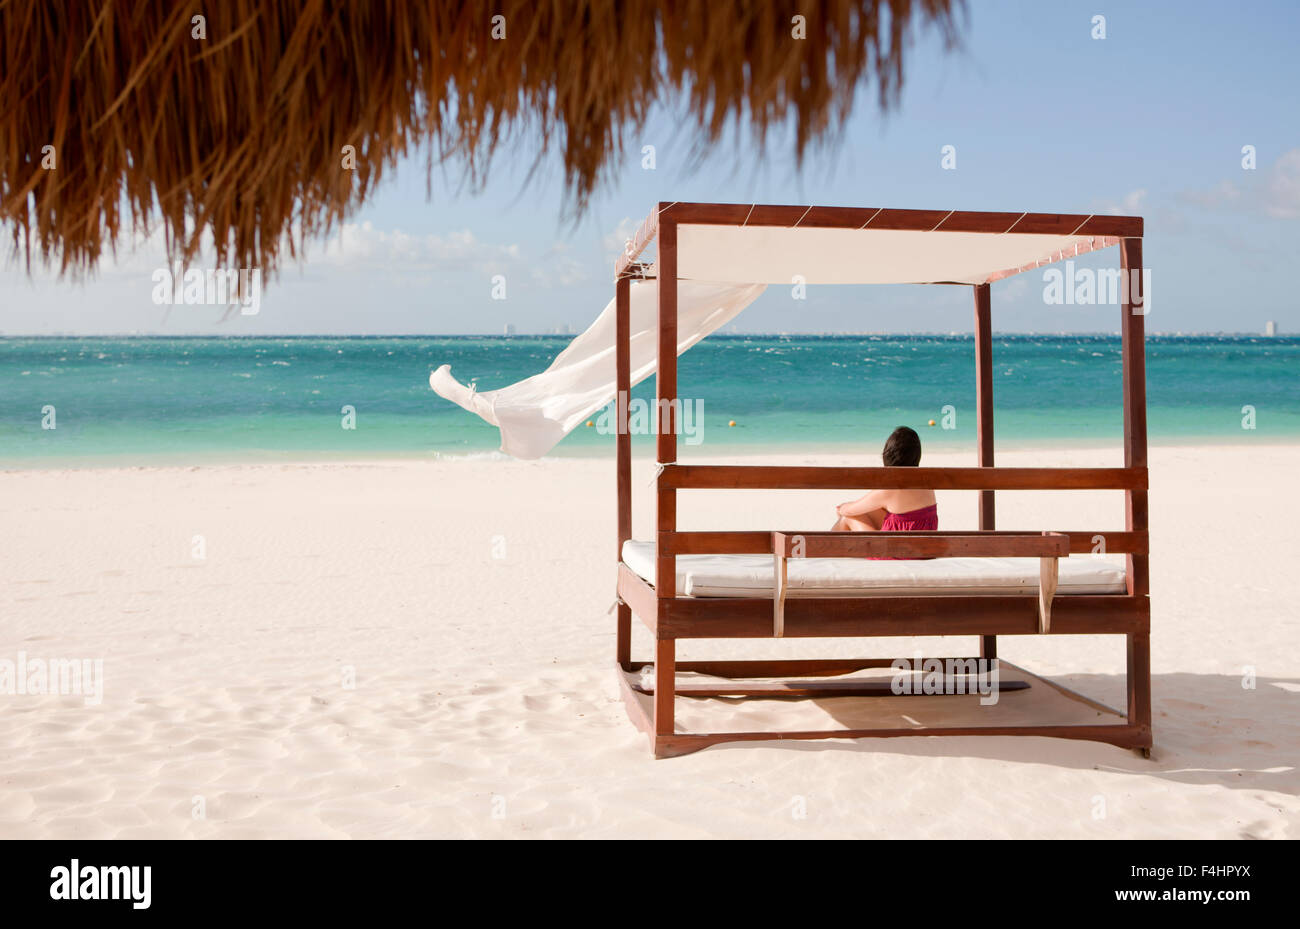 The main beach on Isla Mujeres, an island off Cancun, Quintana Roo, Mexico. - Stock Image